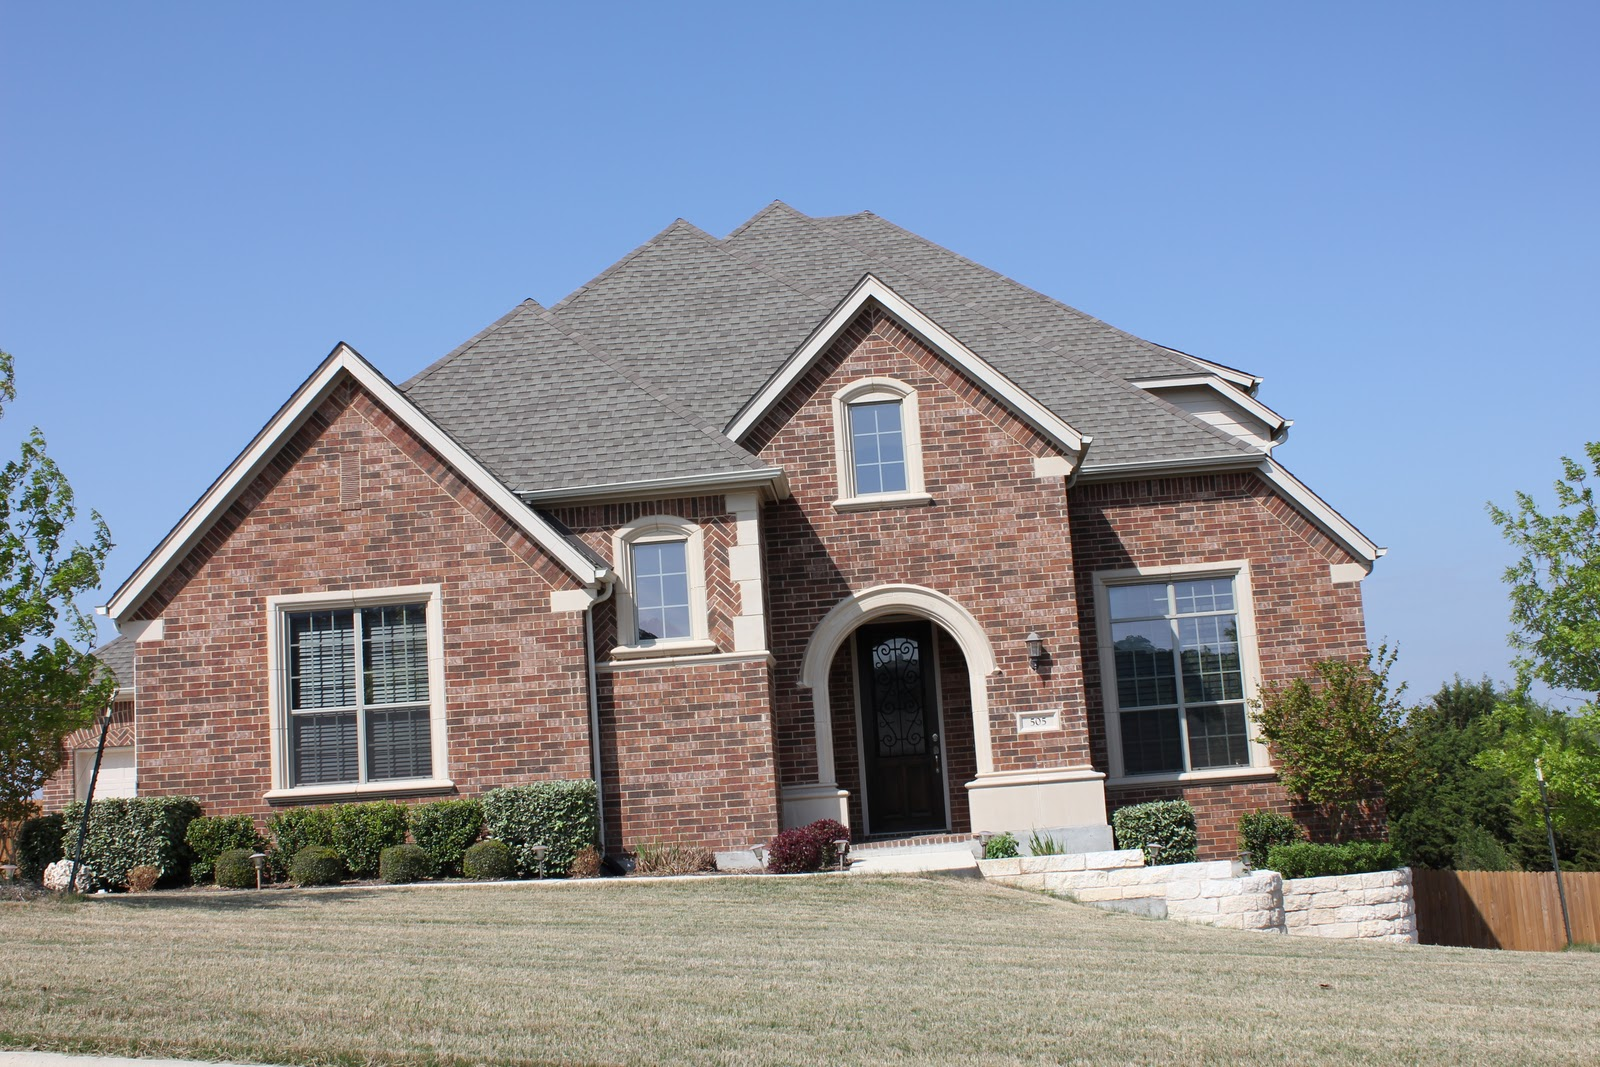 Exterior Paint Color Schemes For Brick Homes | Home ...